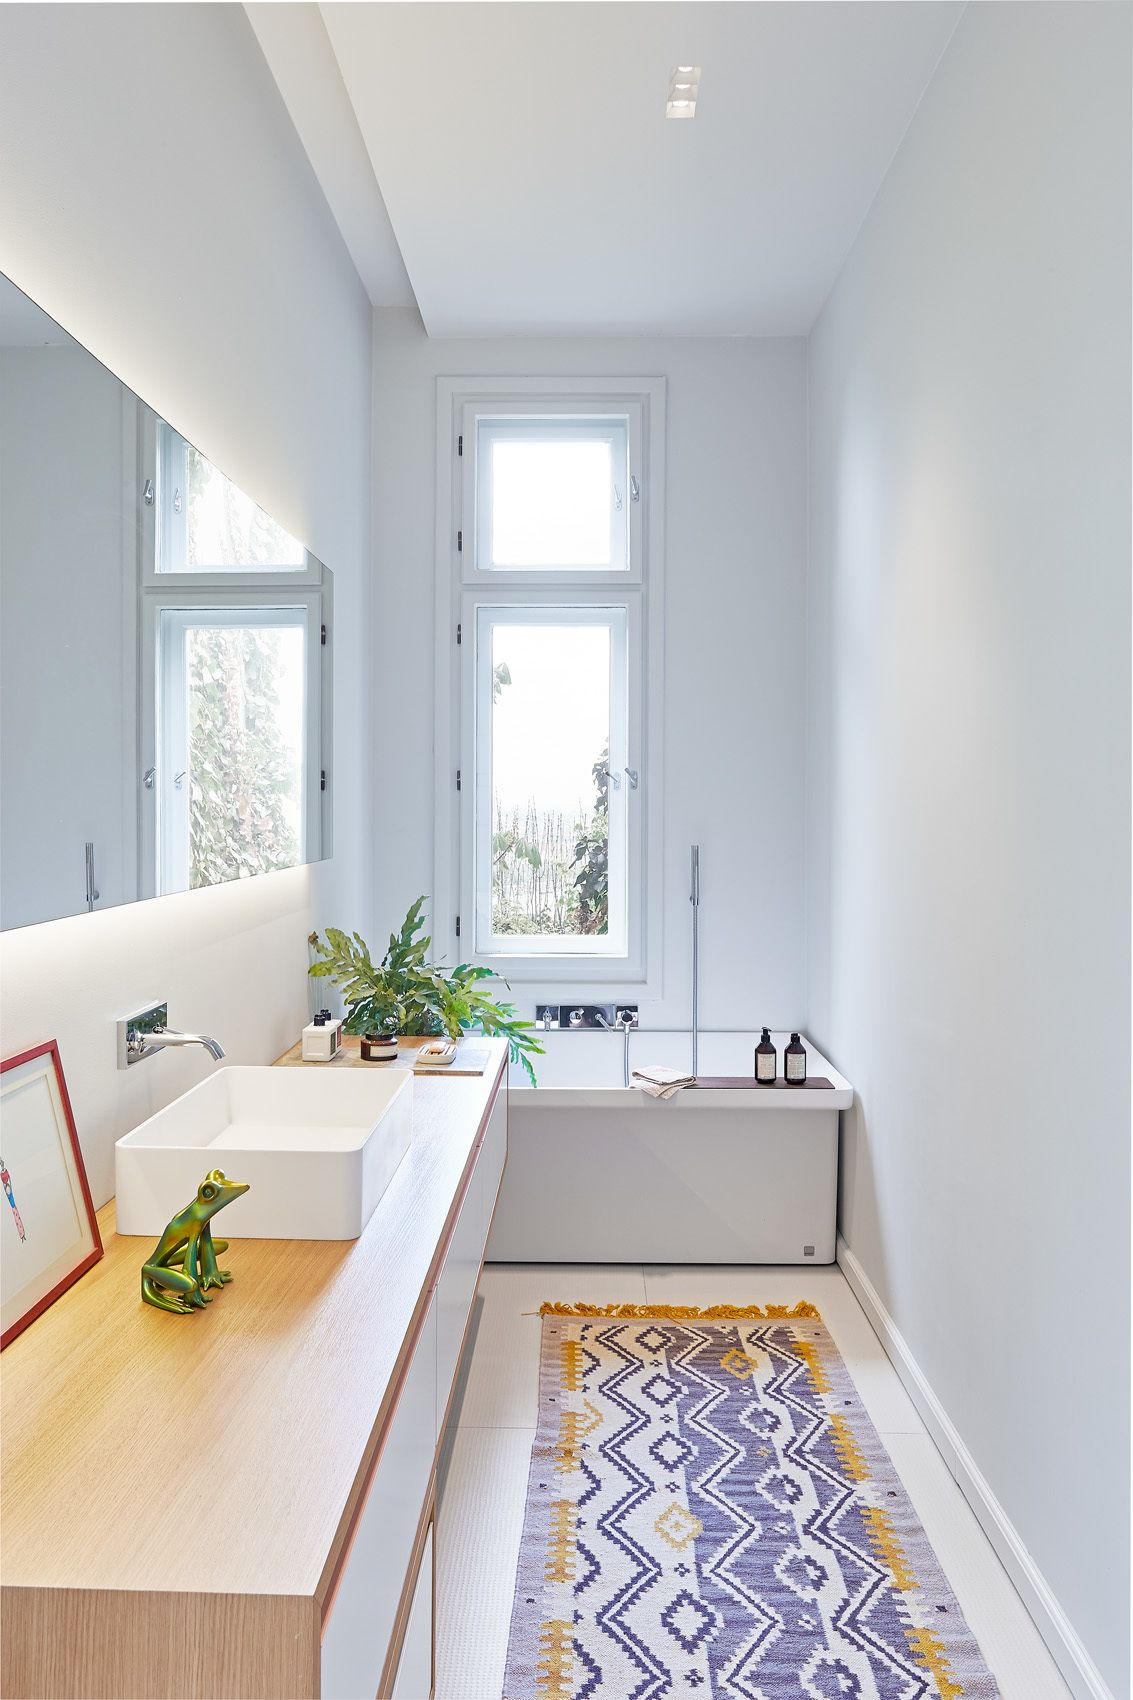 Badezimmer ideen marmorfliese photo  of  in a family villa in budapest with colorfulu  bath